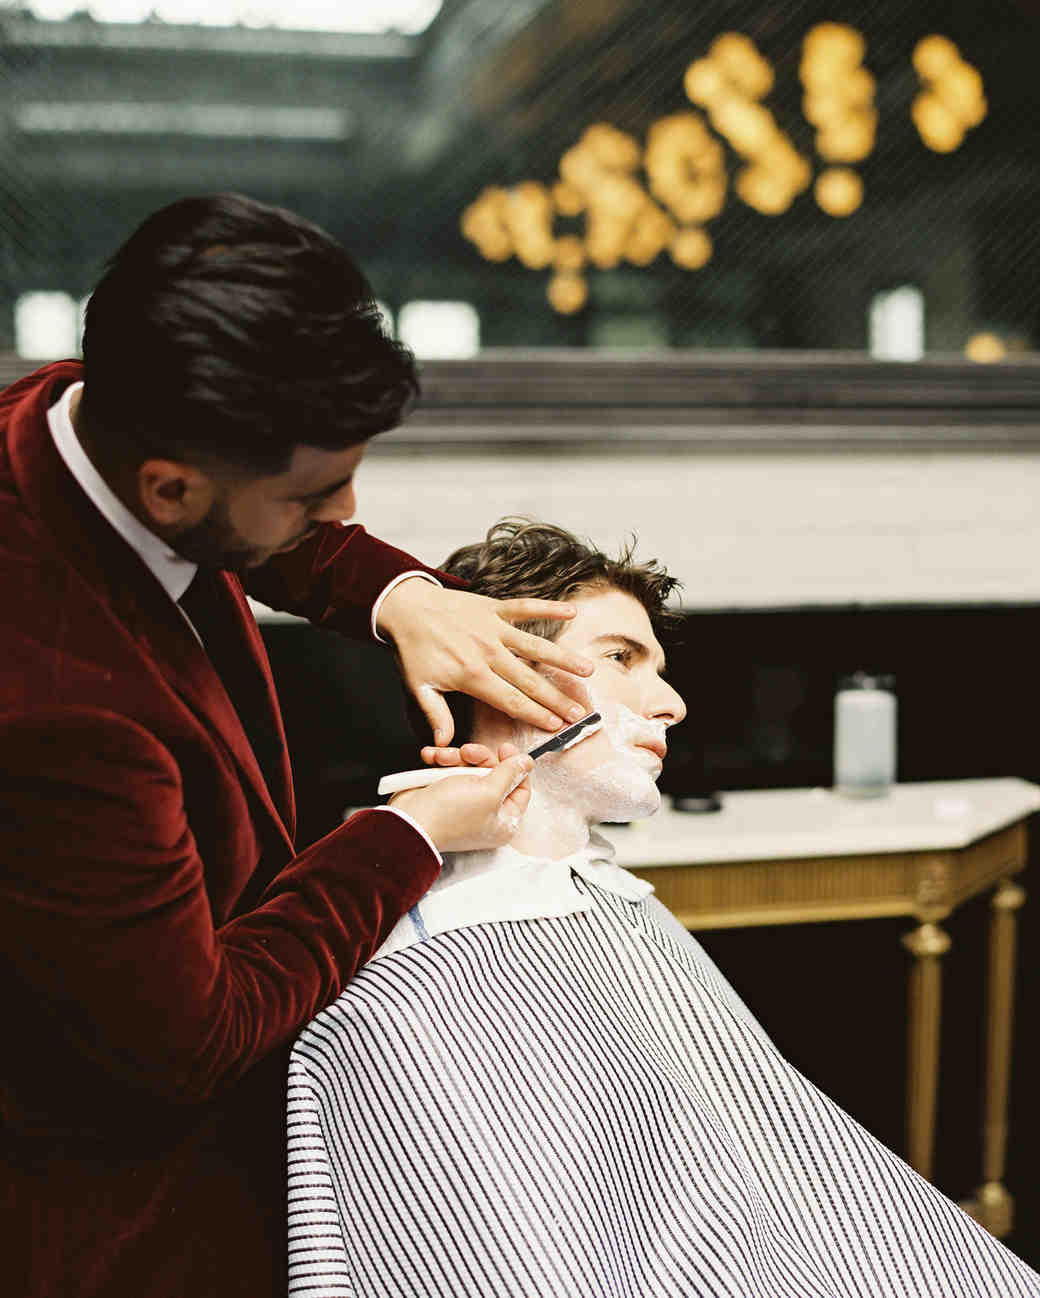 mens-getting-ready-guide-shave-0715.jpg